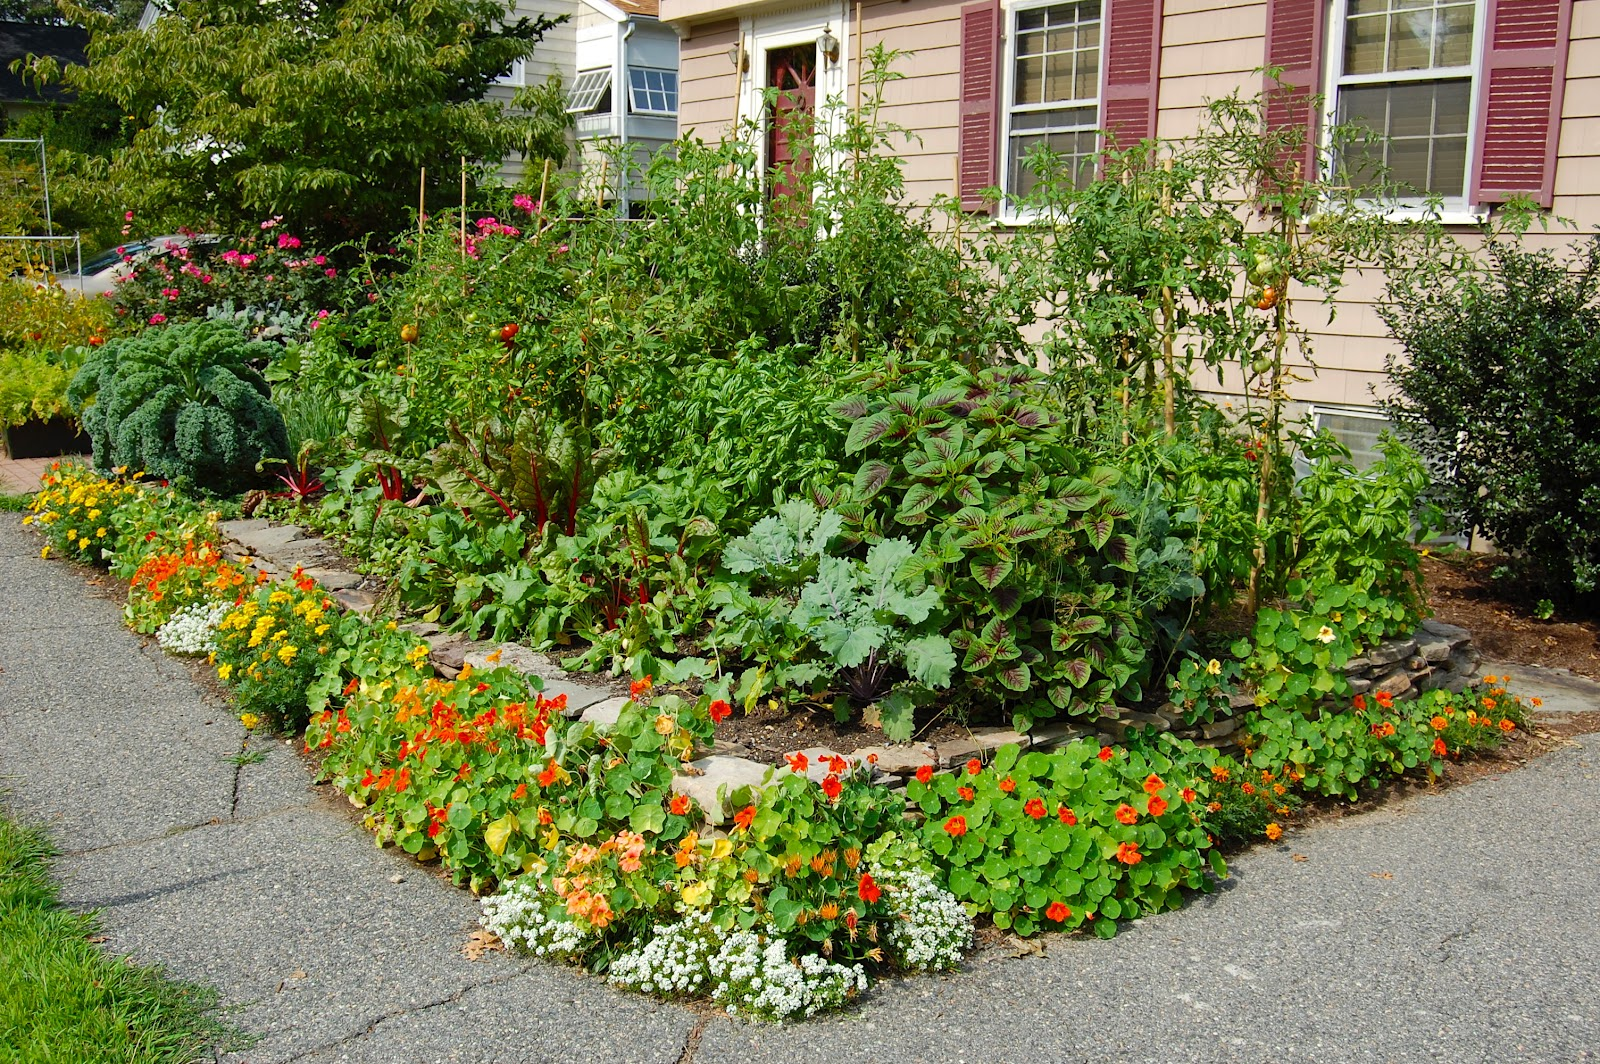 Landscaping landscaping ideas for front yard edible gardens for Front yard garden